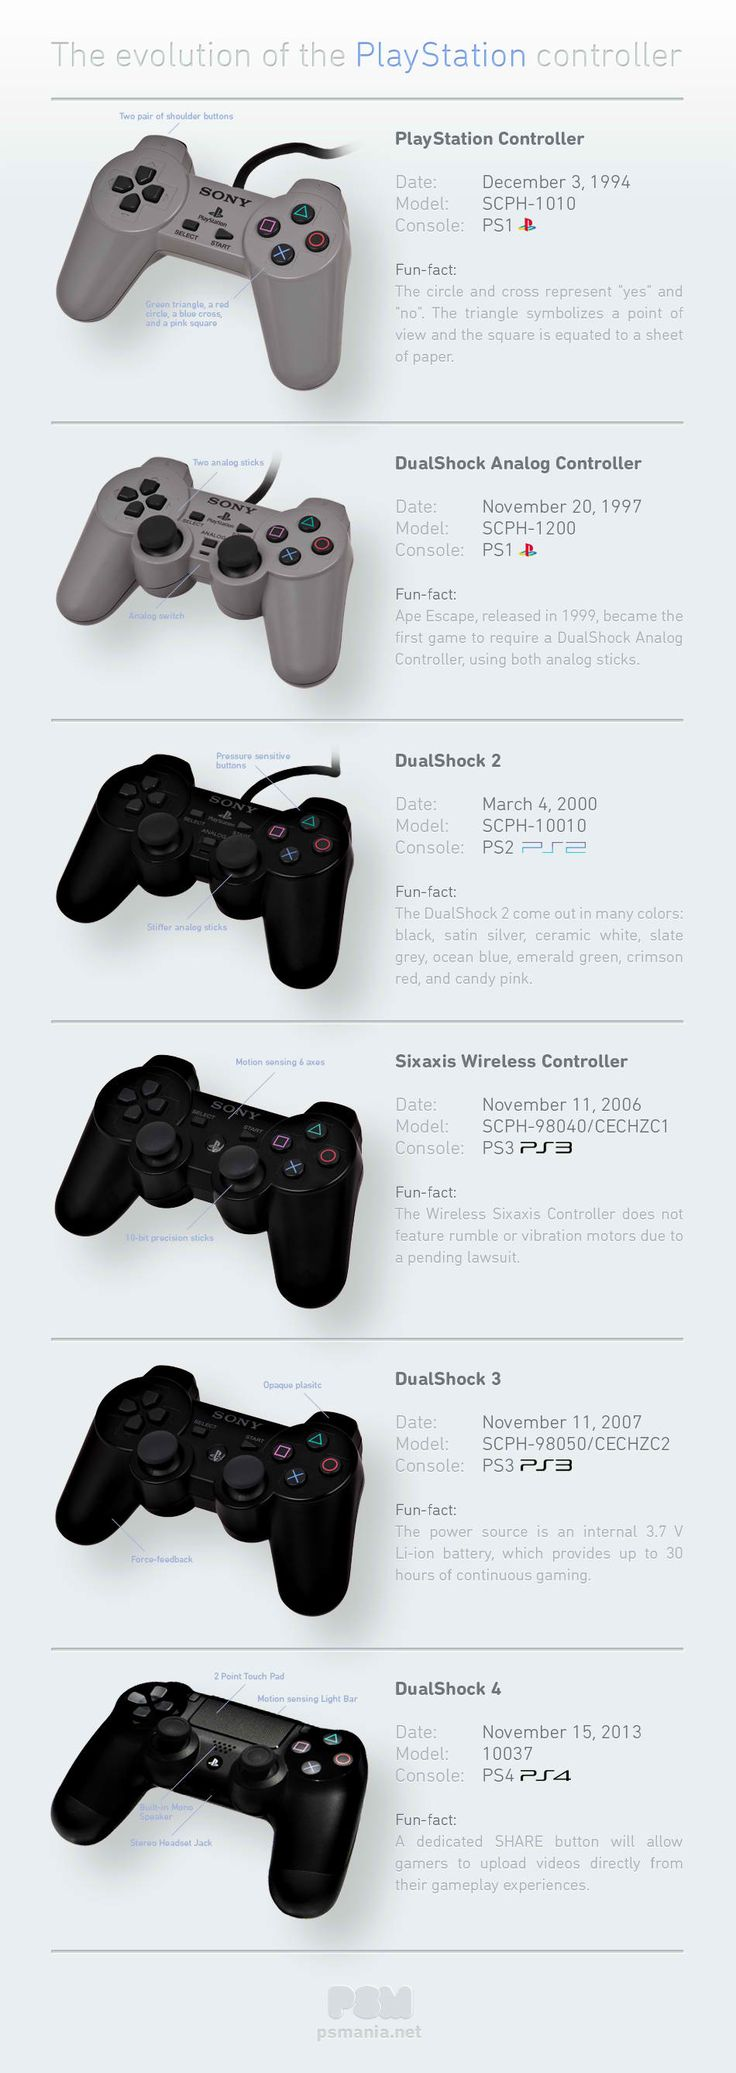 The Evolution of the PlayStation® Controller